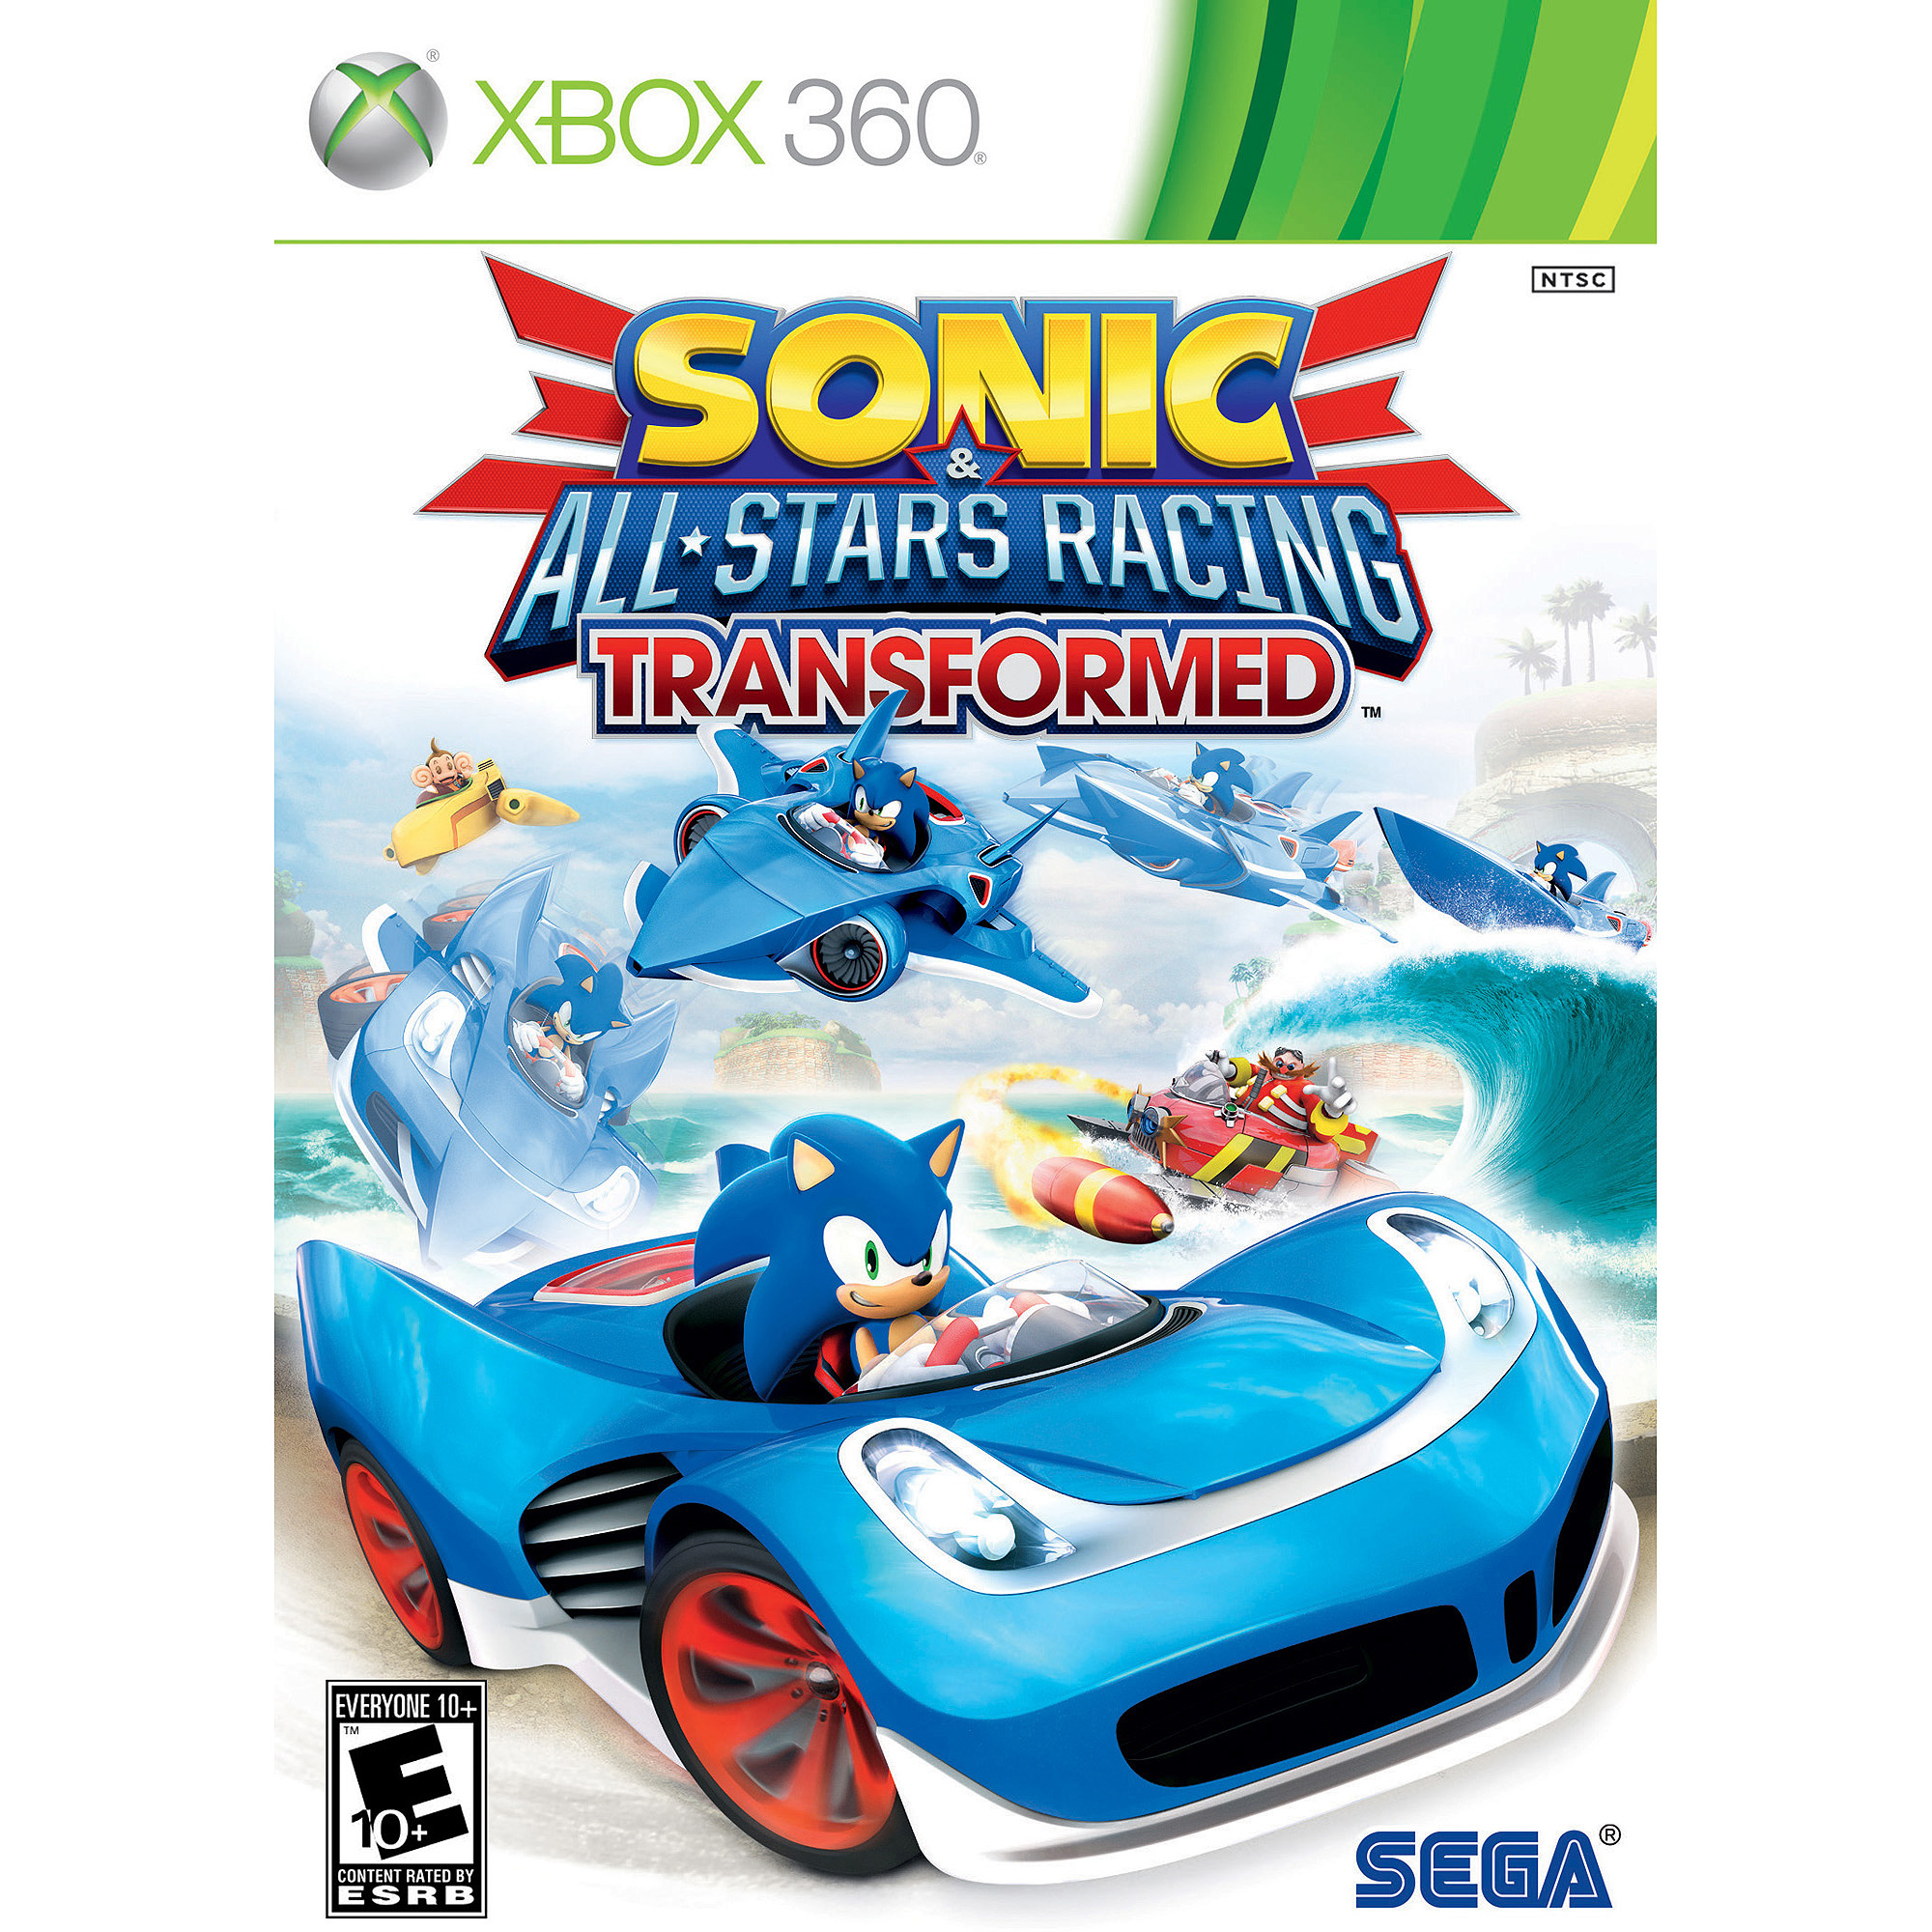 Sonic & All Stars Racing Transformed (Xbox 360) - Pre-Owned